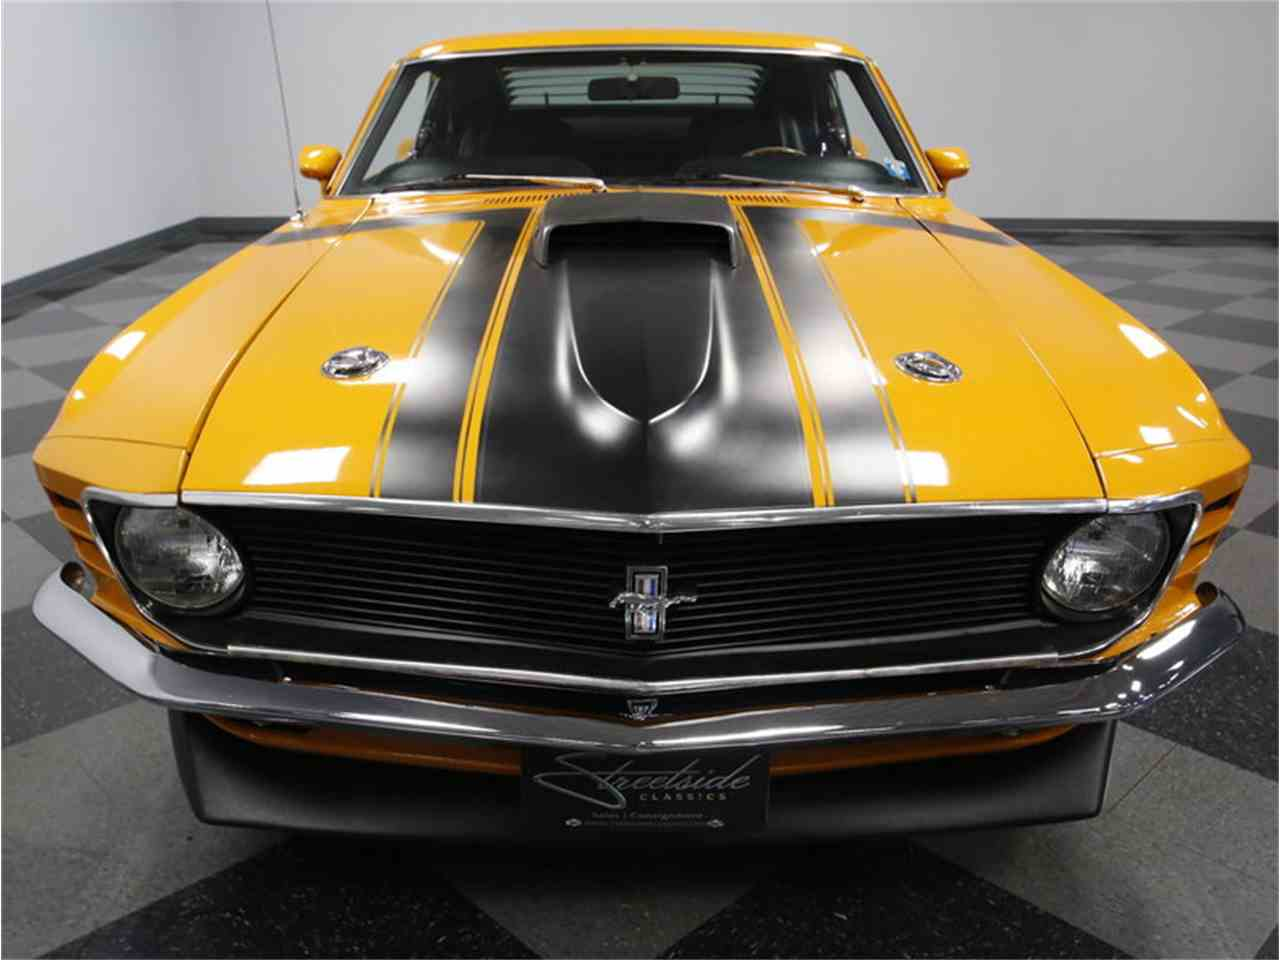 Large Picture of '70 Mustang Boss 302 Tribute located in North Carolina Offered by Streetside Classics - Charlotte - IQT9